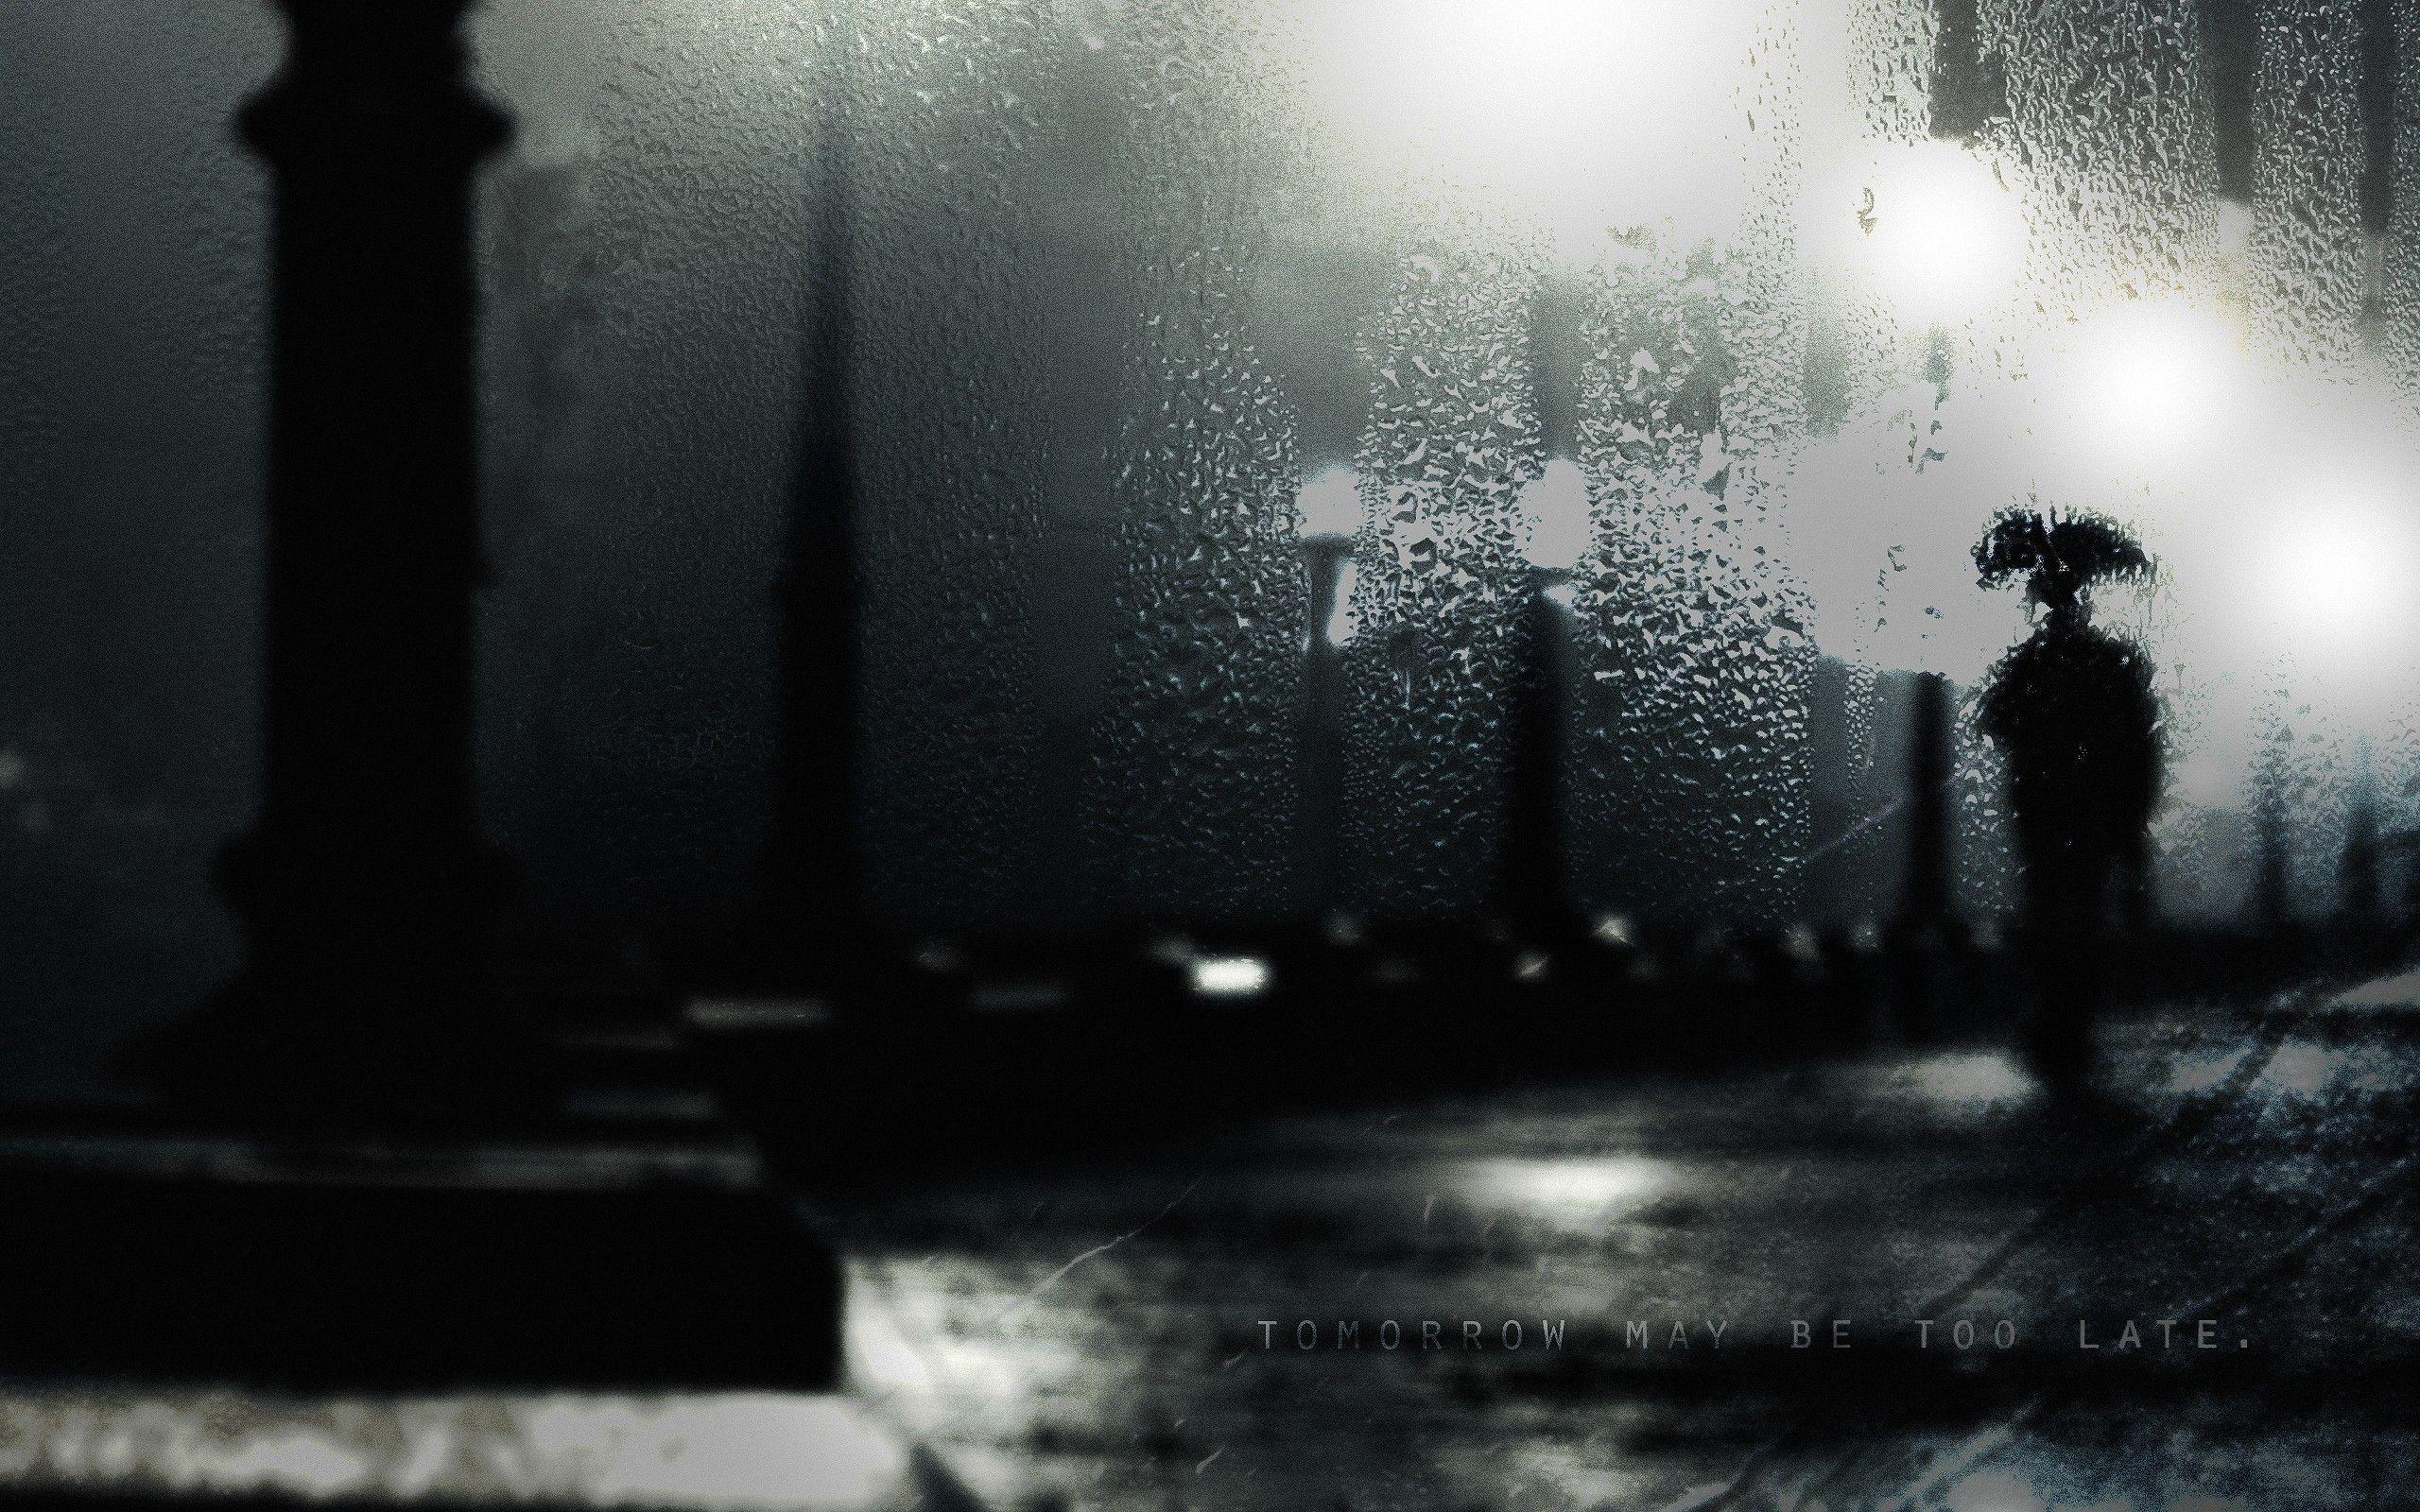 dark, night, rain, alone, wet, thinking, photomanipulations, MESSAGE